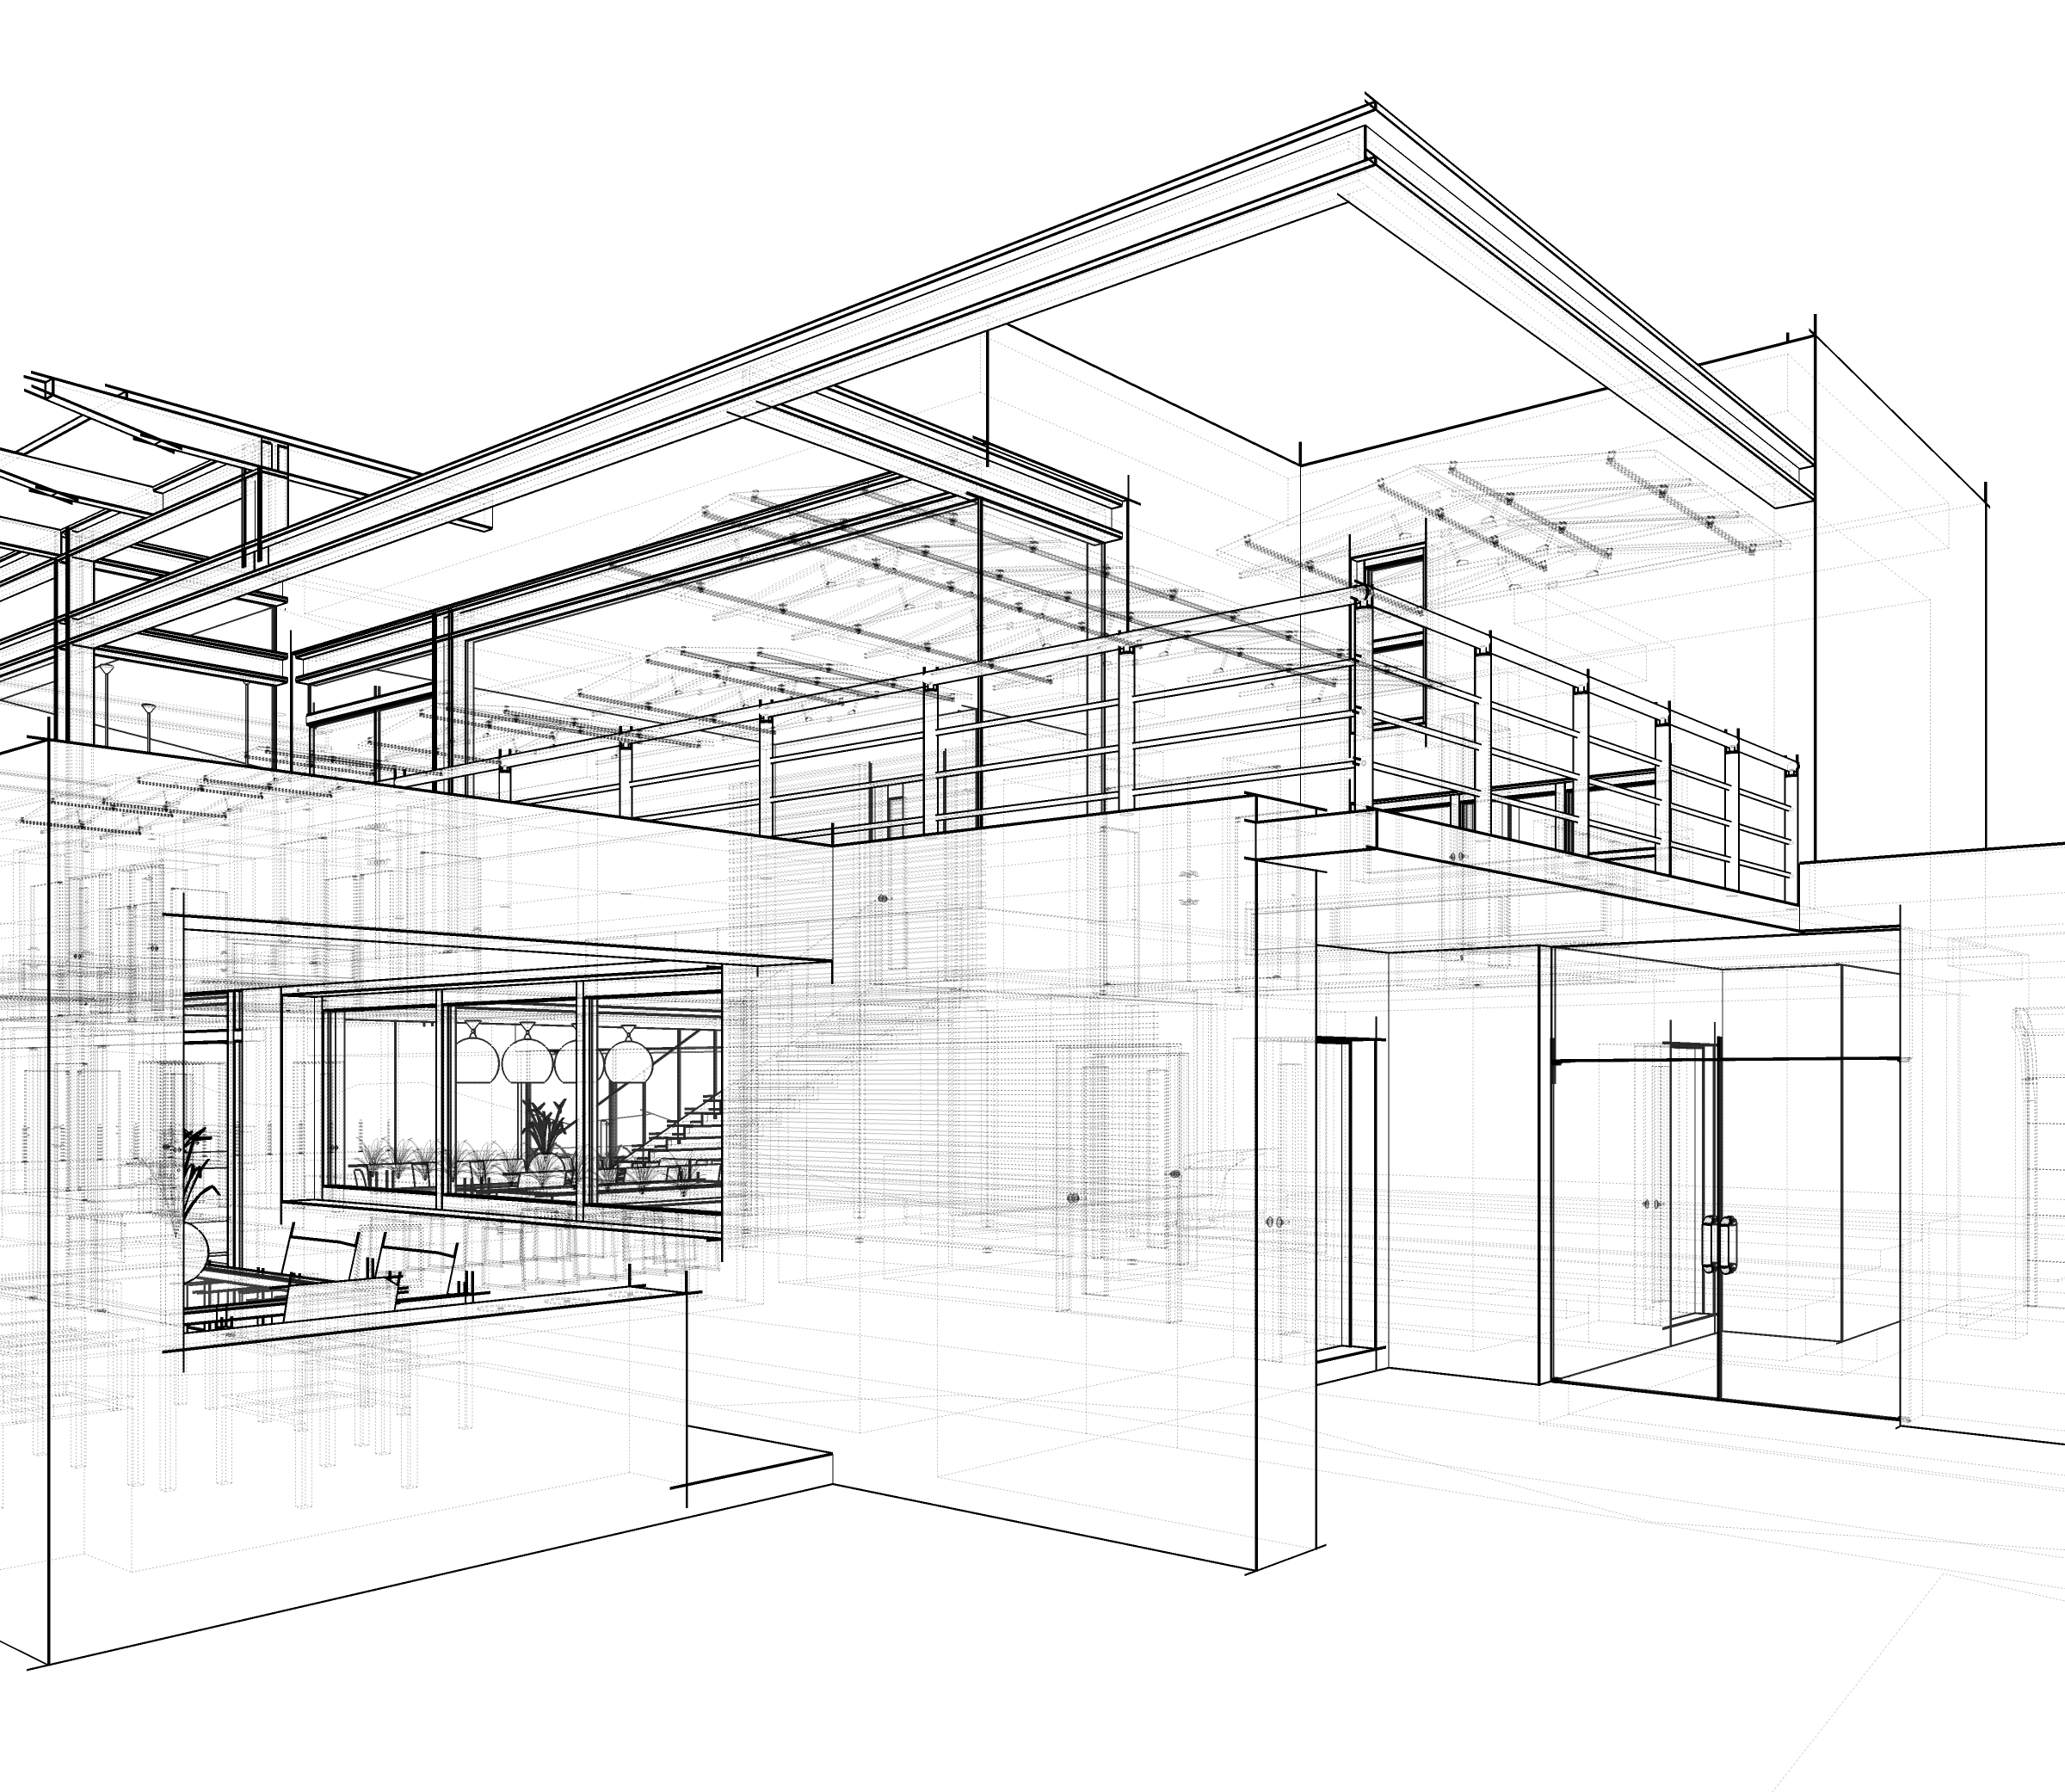 architectural drawing for calculating building acoustics